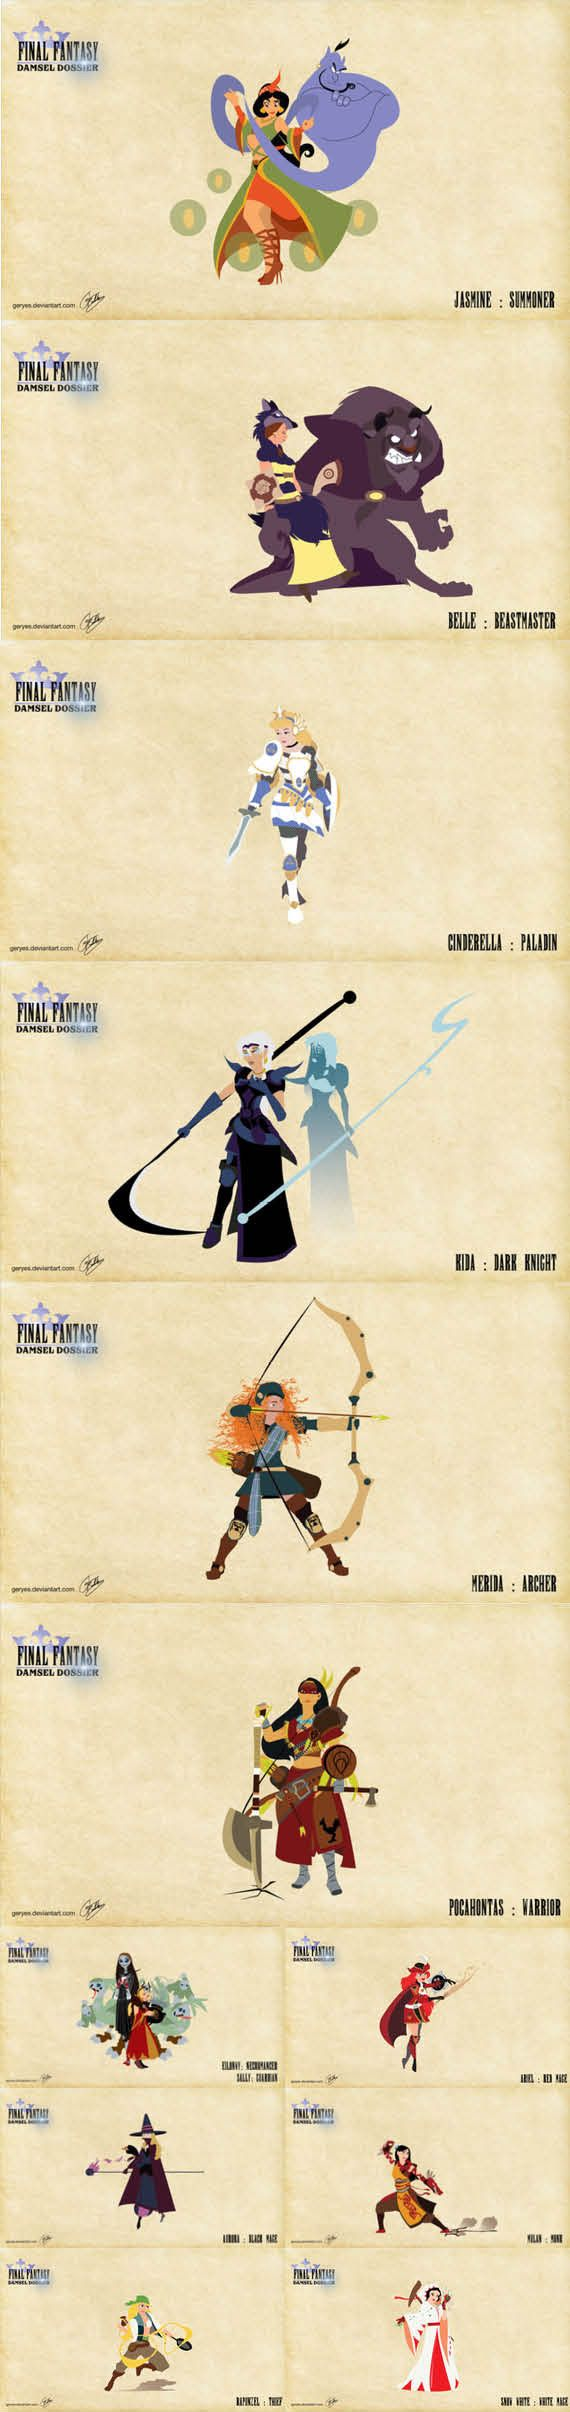 #Disney characters and made up to look like as #FinalFantasy Job Classes! #DeviantArt http://www.levelgamingground.com/disney-and-final-fantasy-news.html